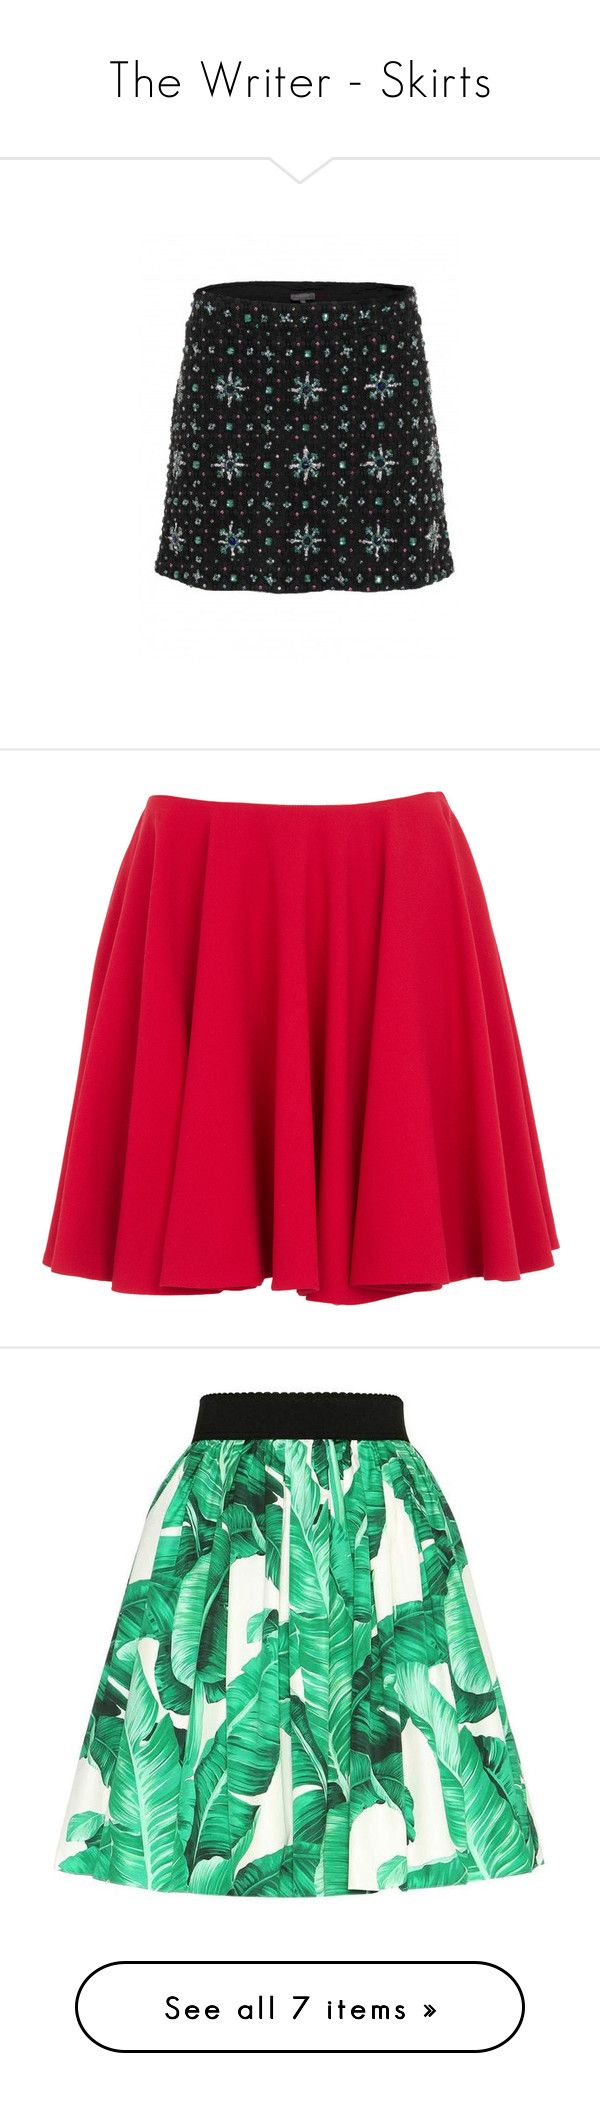 """The Writer - Skirts"" by gracebeckett ❤ liked on Polyvore featuring skirts, bottoms, saias, faldas, red, flare skirt, flared hem skirt, red skirt, red flared skirt and woolen skirt"